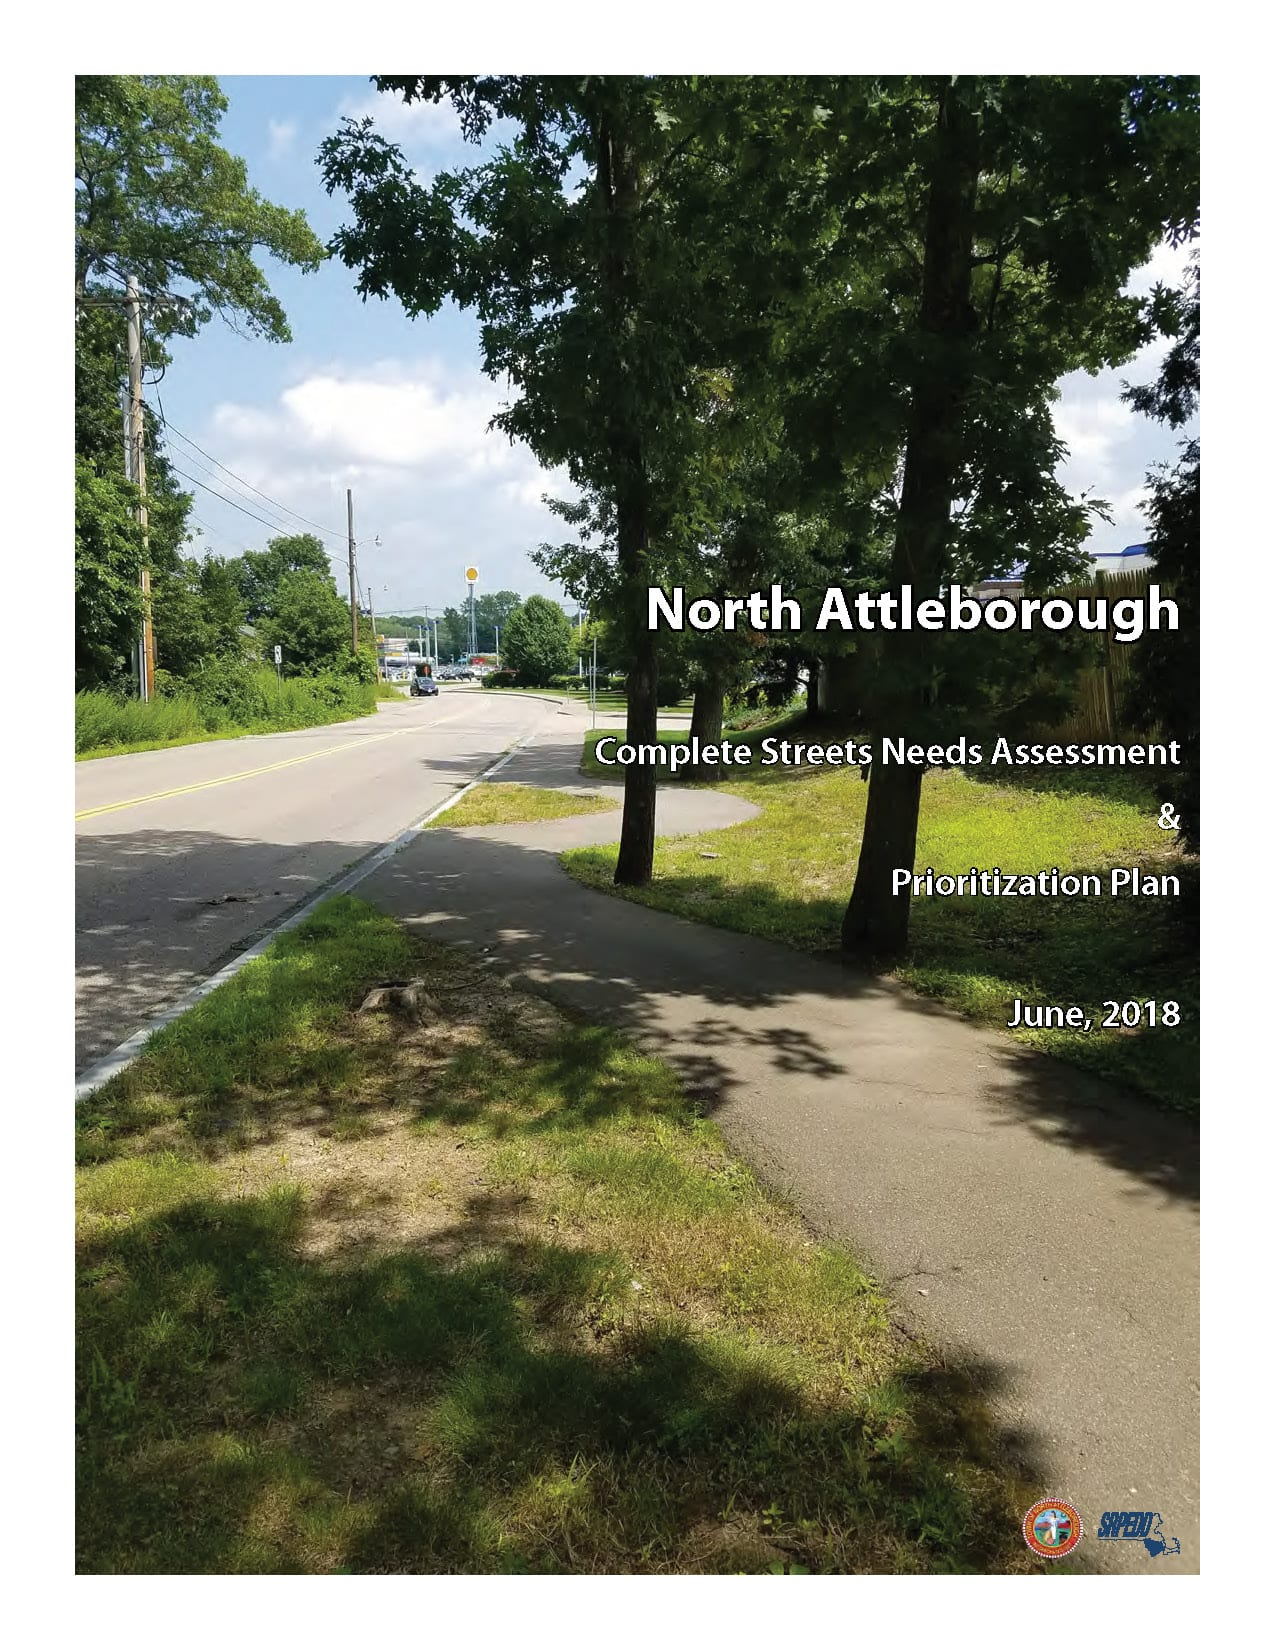 Cover page of the North Attleborough Complete Streets Needs Assessment & Prioritization Plan